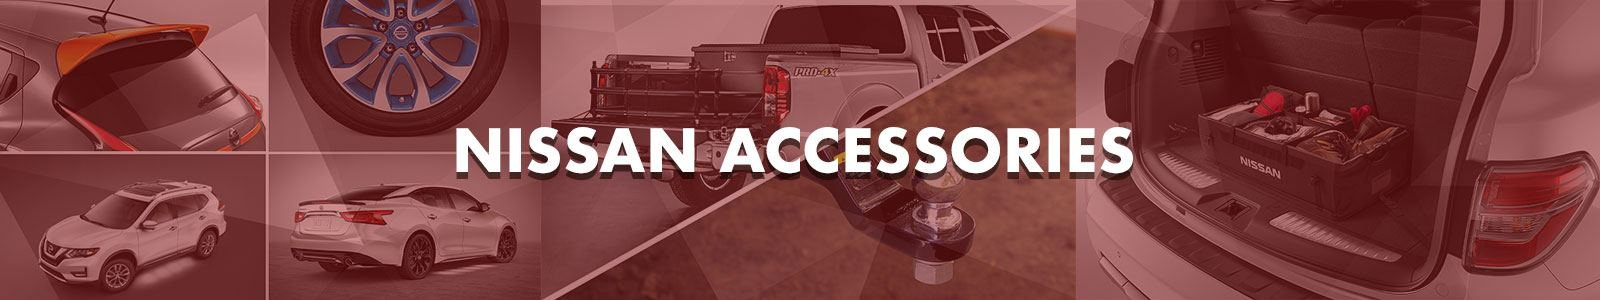 nissan-acc-Accessories